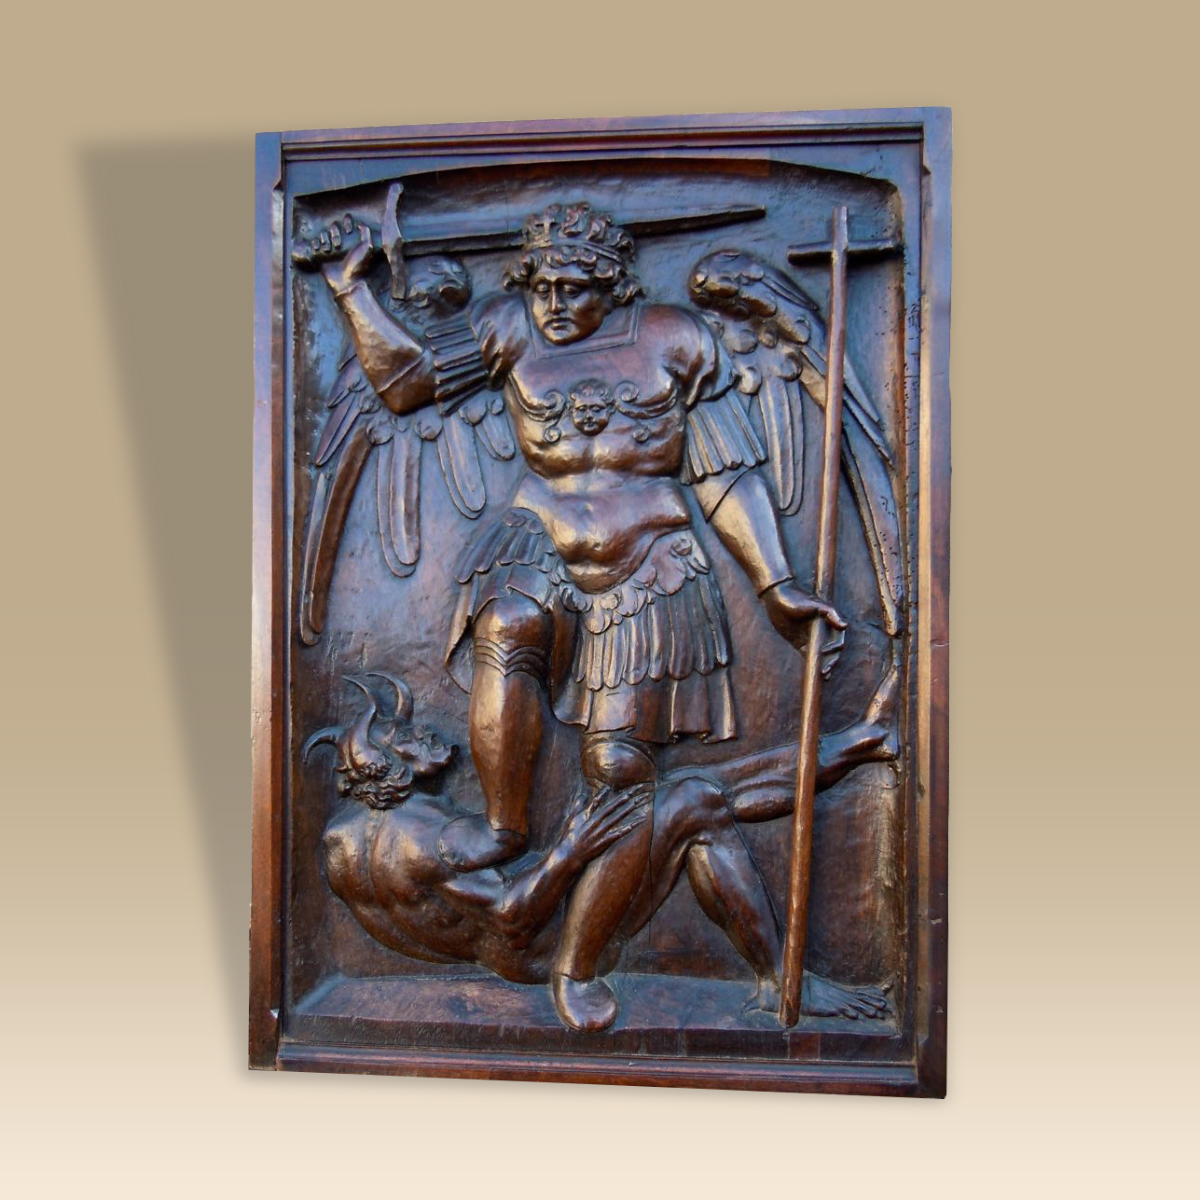 A well executed 16th century walnut panel